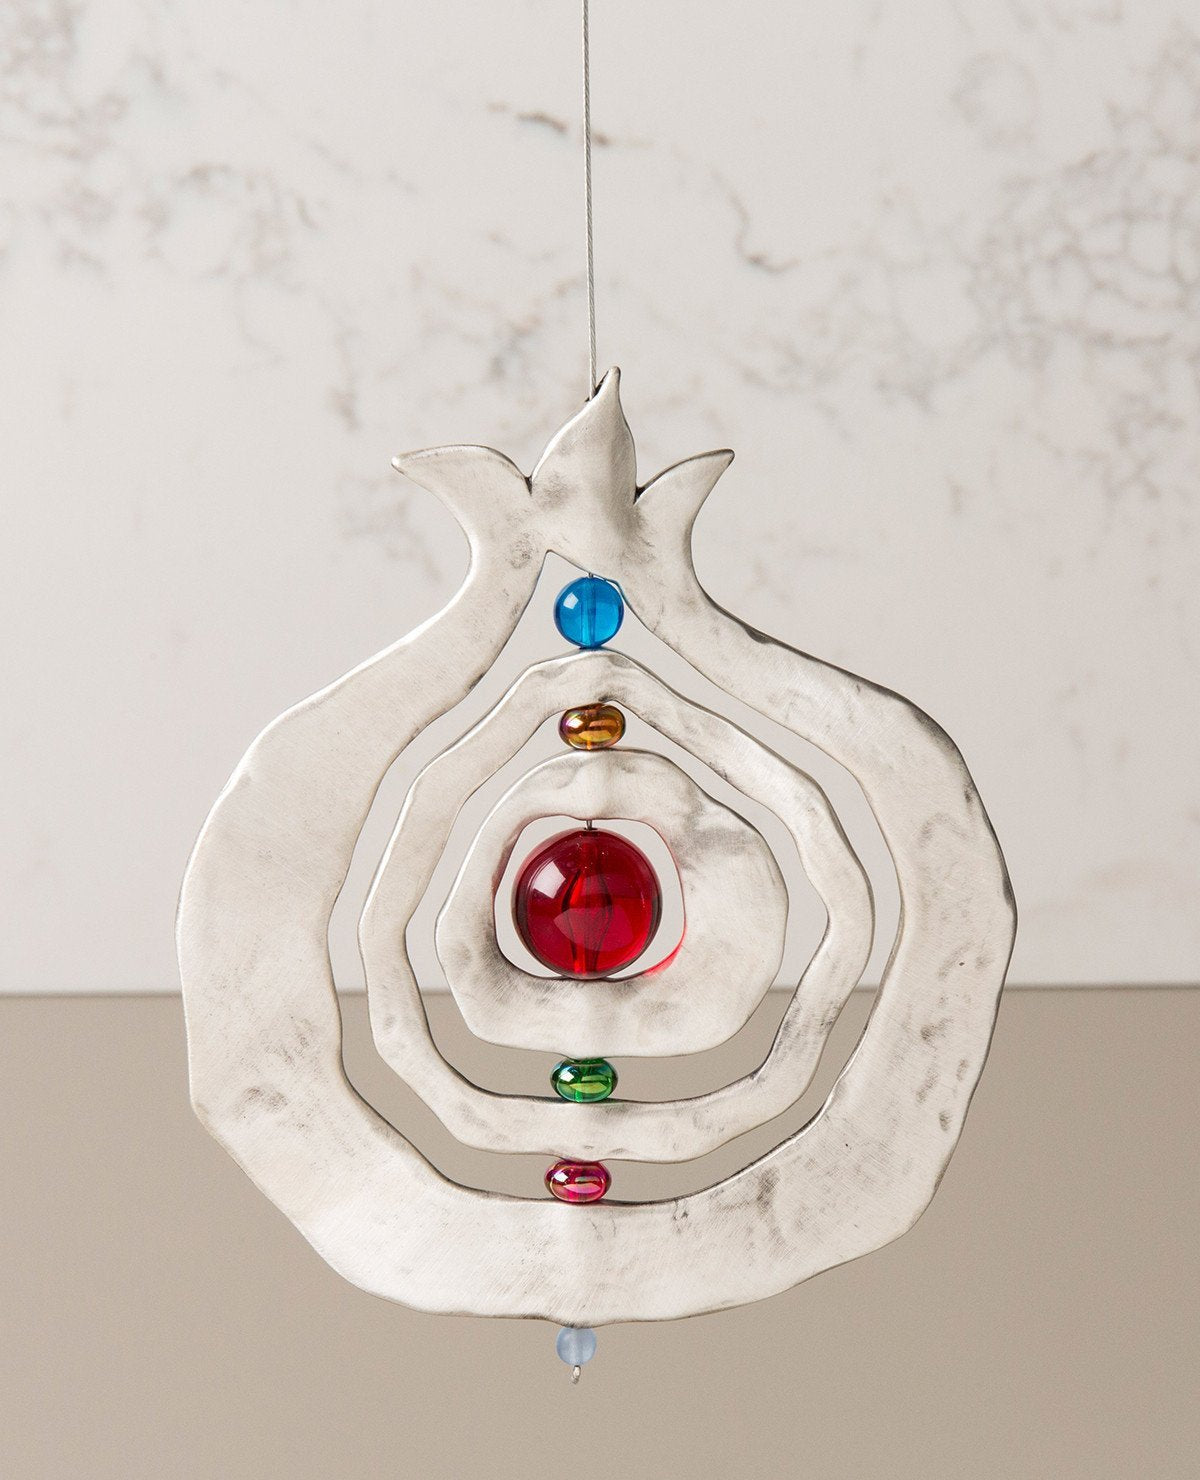 A pomegranate hanging ornament with a unique design that grants it motion which hypnotizes the eye with beauty. The pendant is designed in the shape of a hollow pomegranate with circular shapes at its center which are thread around one central axis, with colorful beads between them. The pendant is coated in sterling silver and hangs from a thin and strong silver string. Always suitable as a unique gift, embodying within it the pomegranate's blessing of abundance and fertility. Especially suitable around Ros